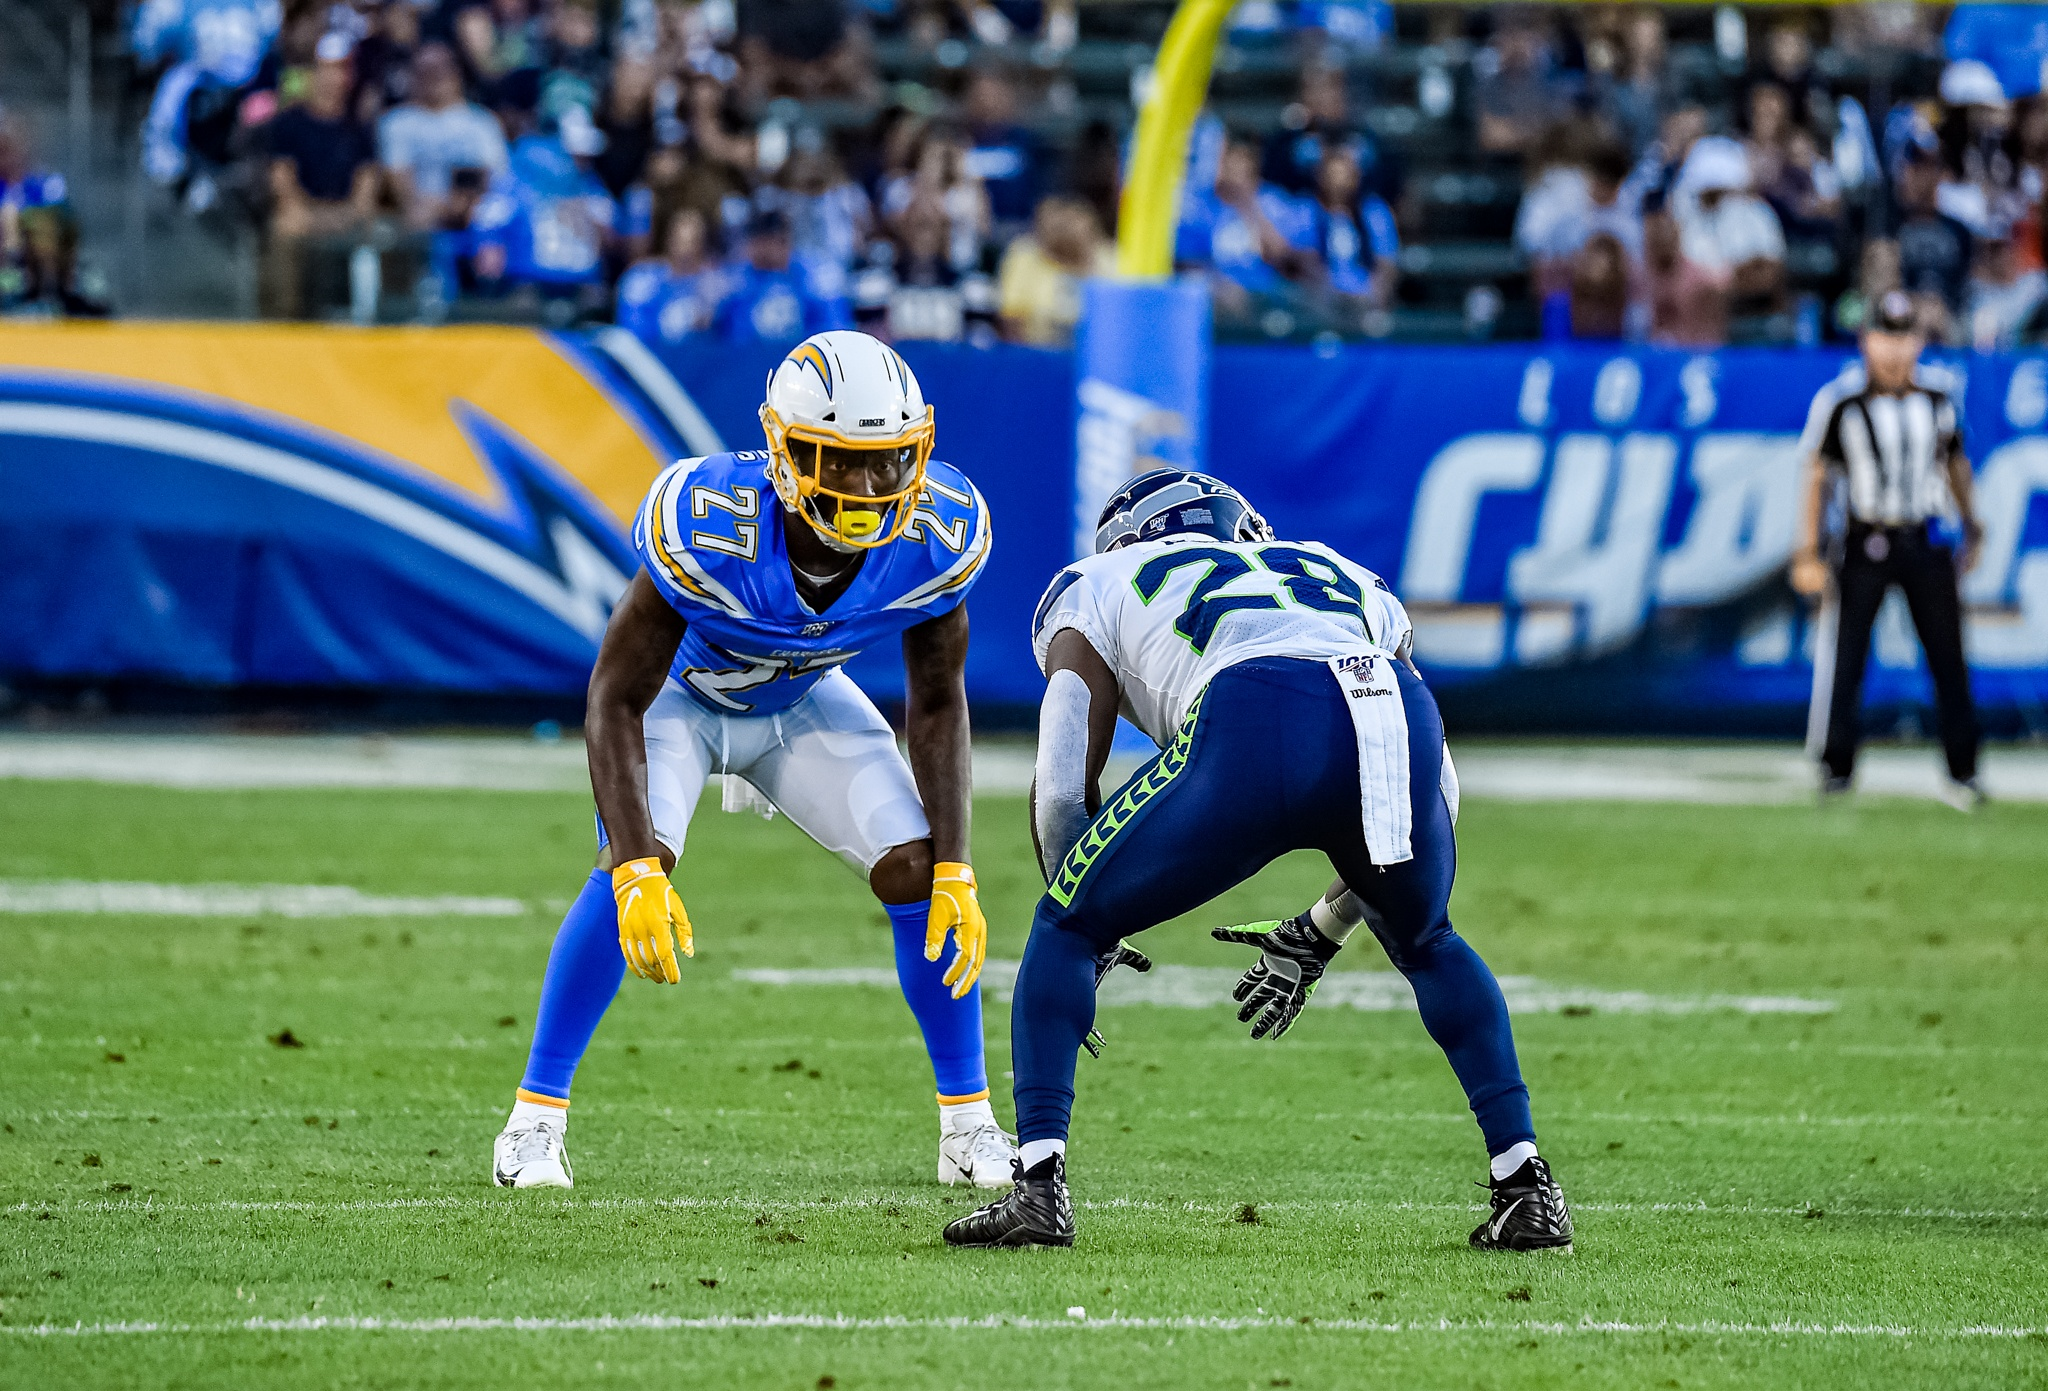 © Mark Hammond/News4usonline - Aug. 24, 2019 - Seahawks vs. Chargers - Chargers defensive back Jaylen Watkins (27) ready for action.